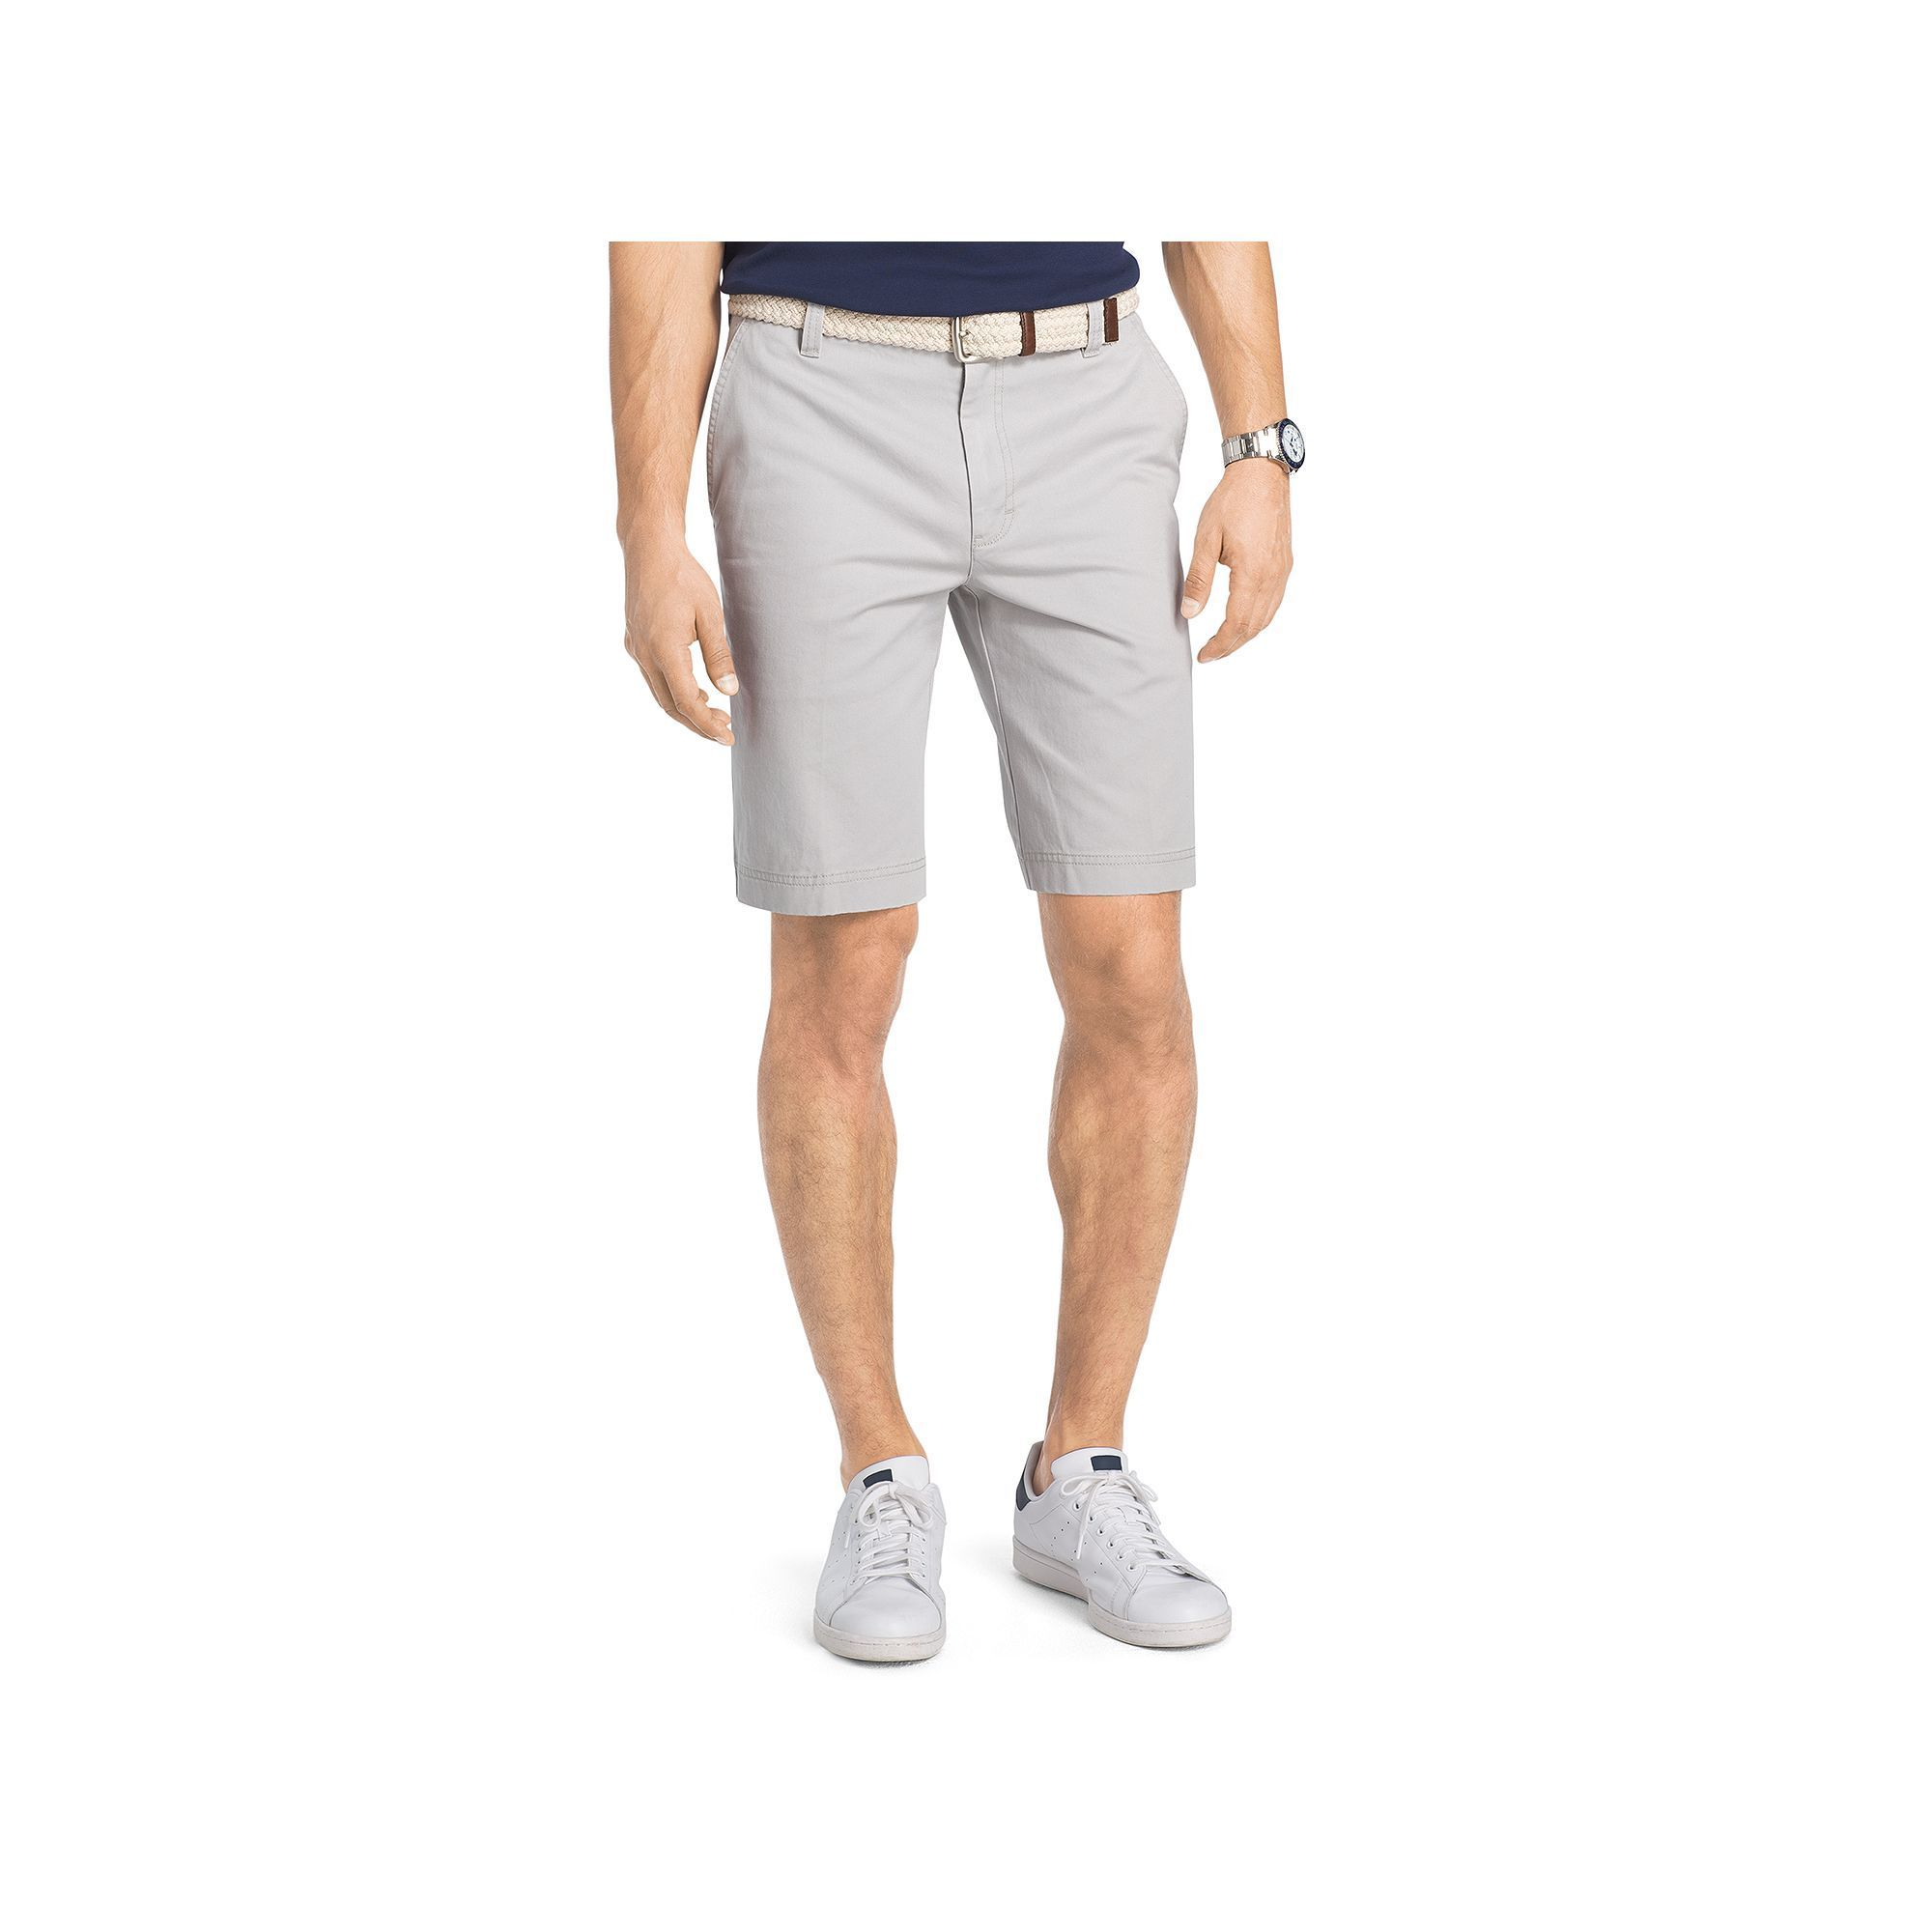 Big & Tall IZOD Saltwater Classic-Fit Solid Flat-Front Chino Shorts, Men's, Size: 46, Light Grey